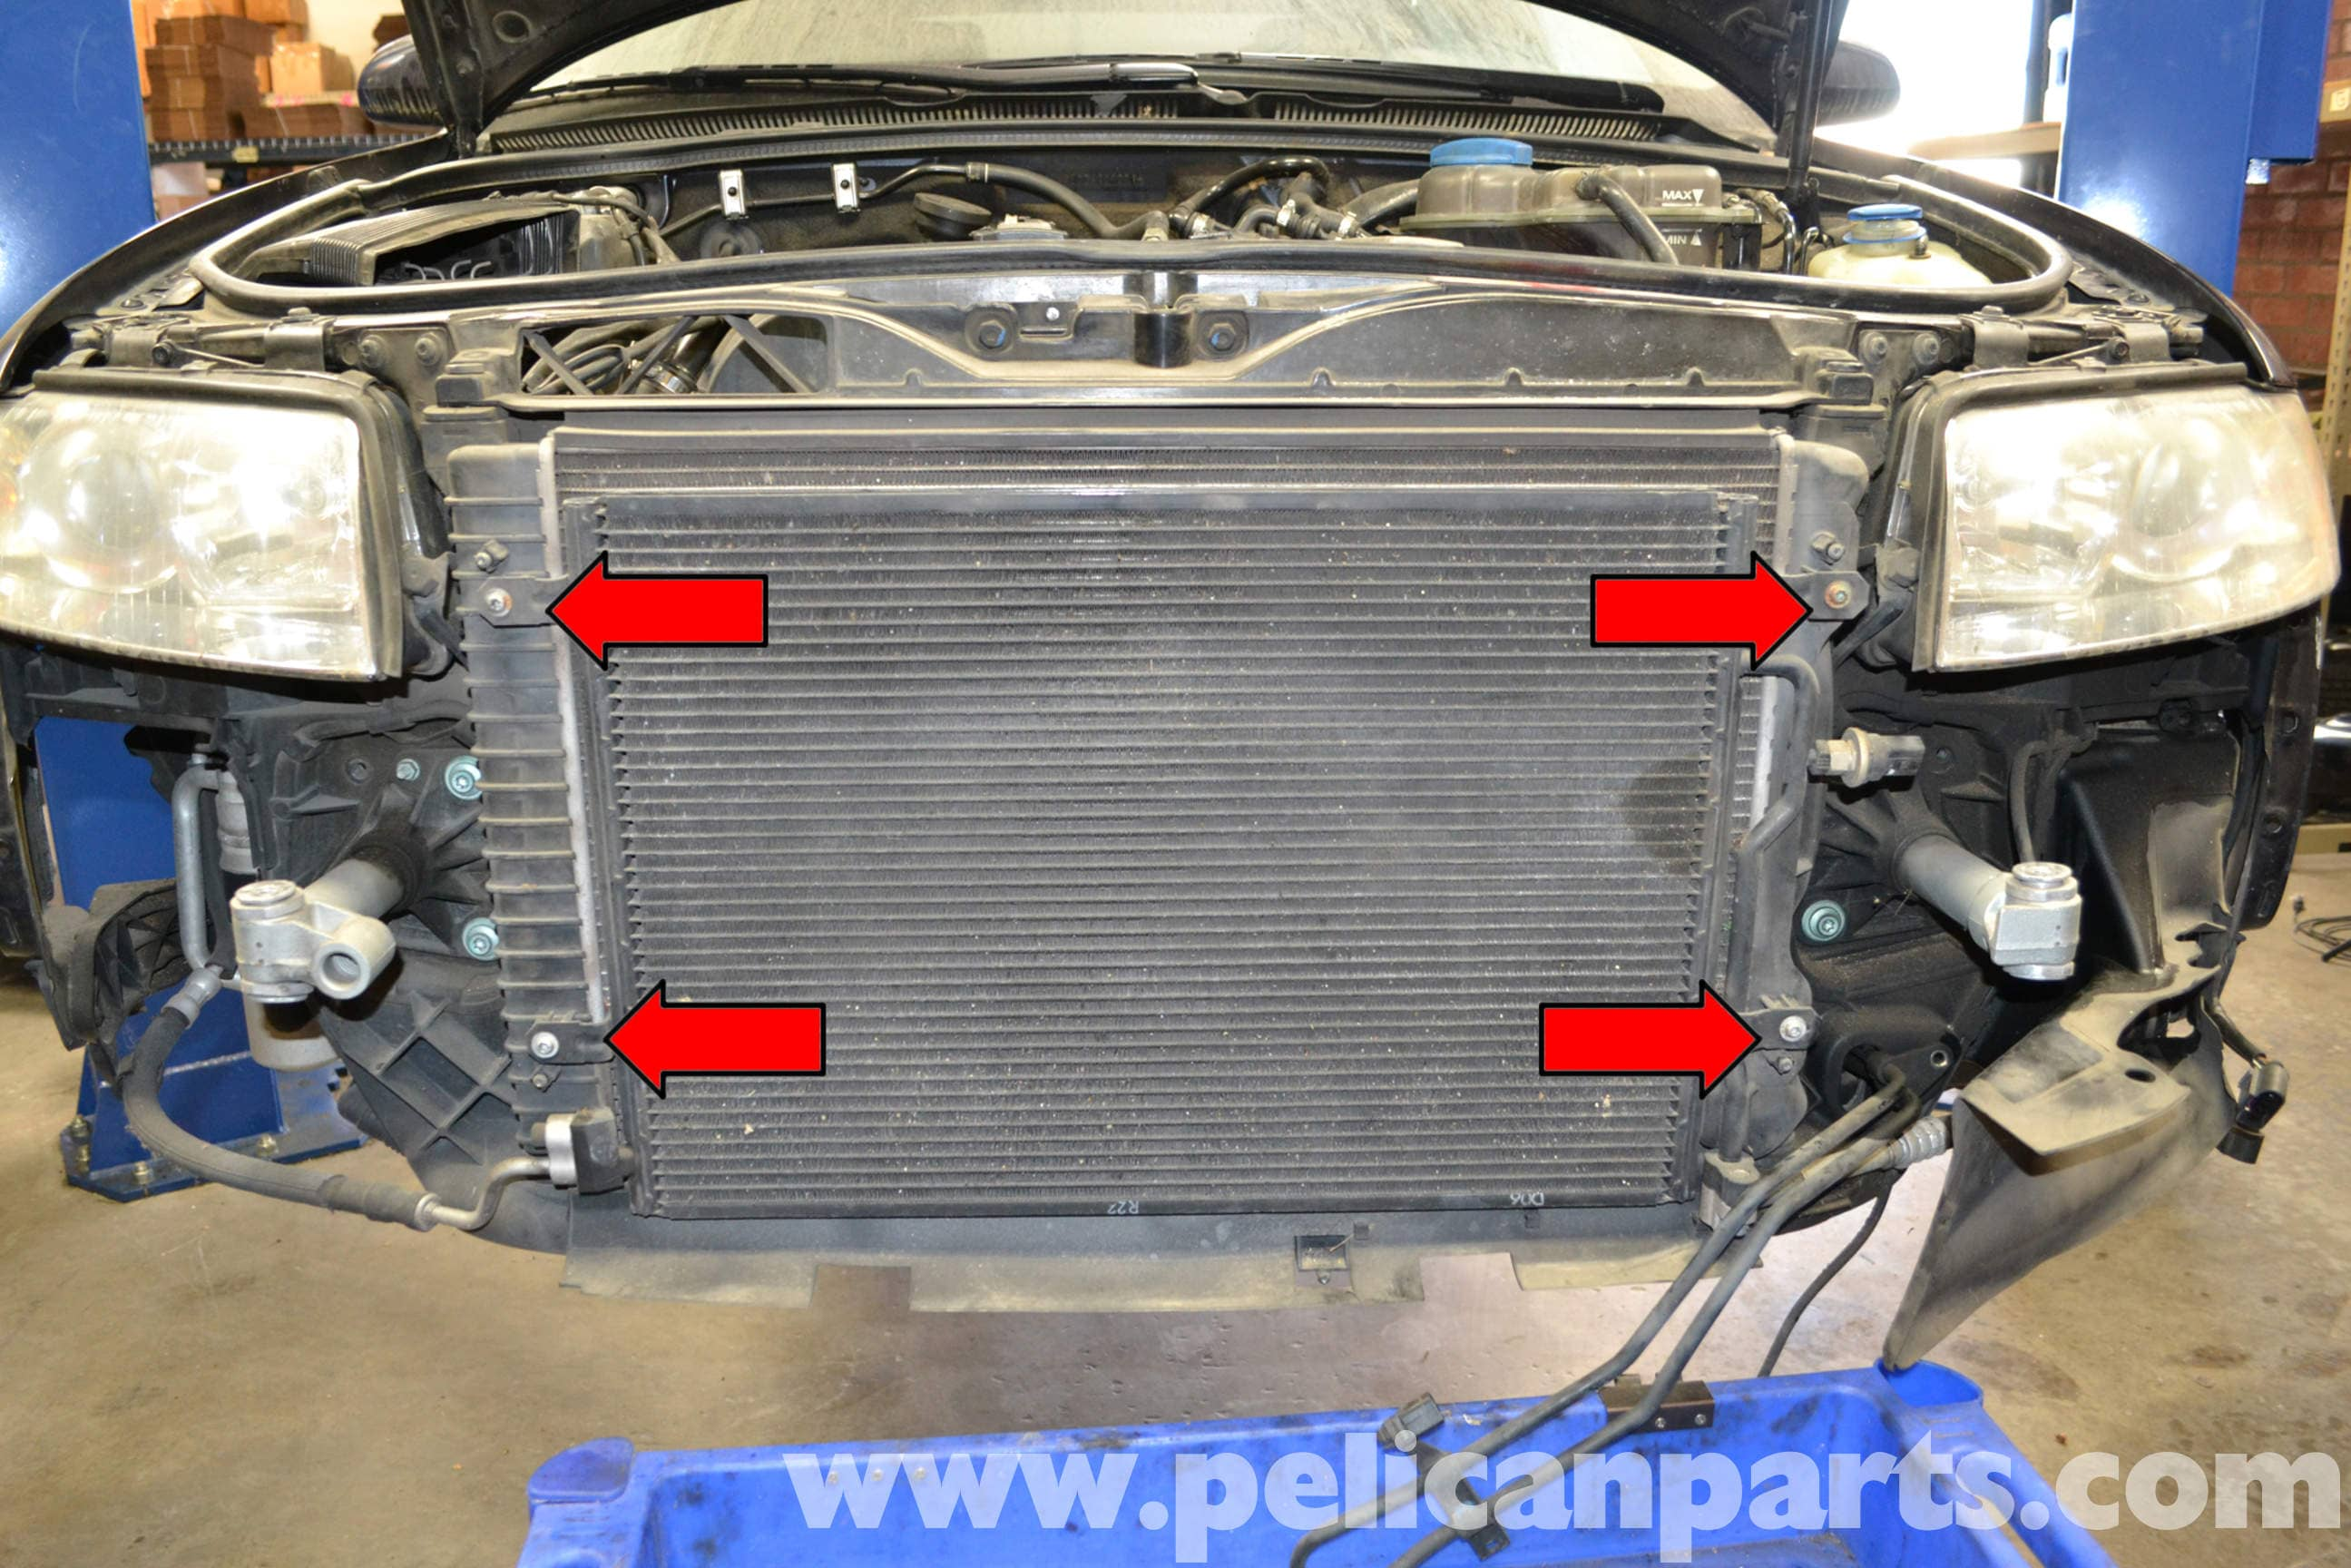 audi a4 b6 radiator replacement 1 8t 2002 2008 pelican parts diy rh pelicanparts com 2002 Audi Car 2002 Audi Avant